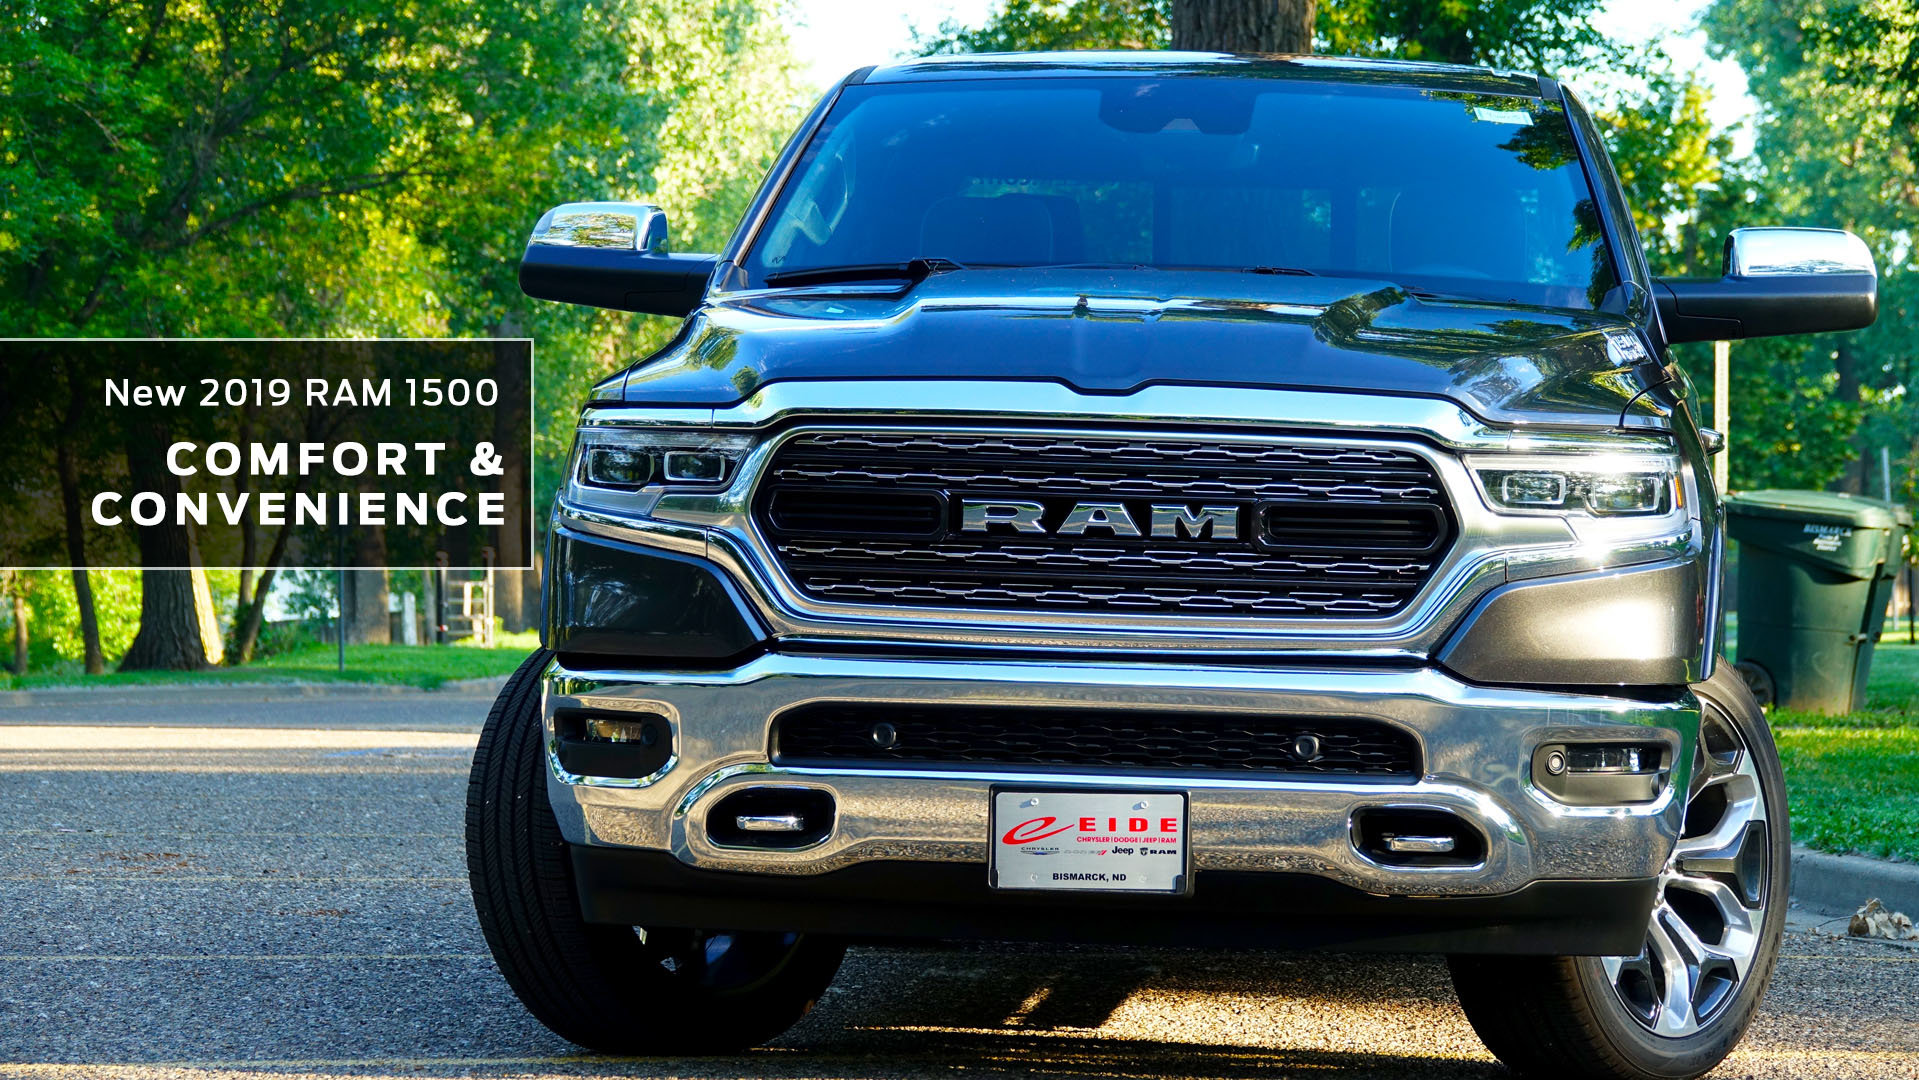 An overview of the new, 2019 RAM 1500's comfort and convenience features.